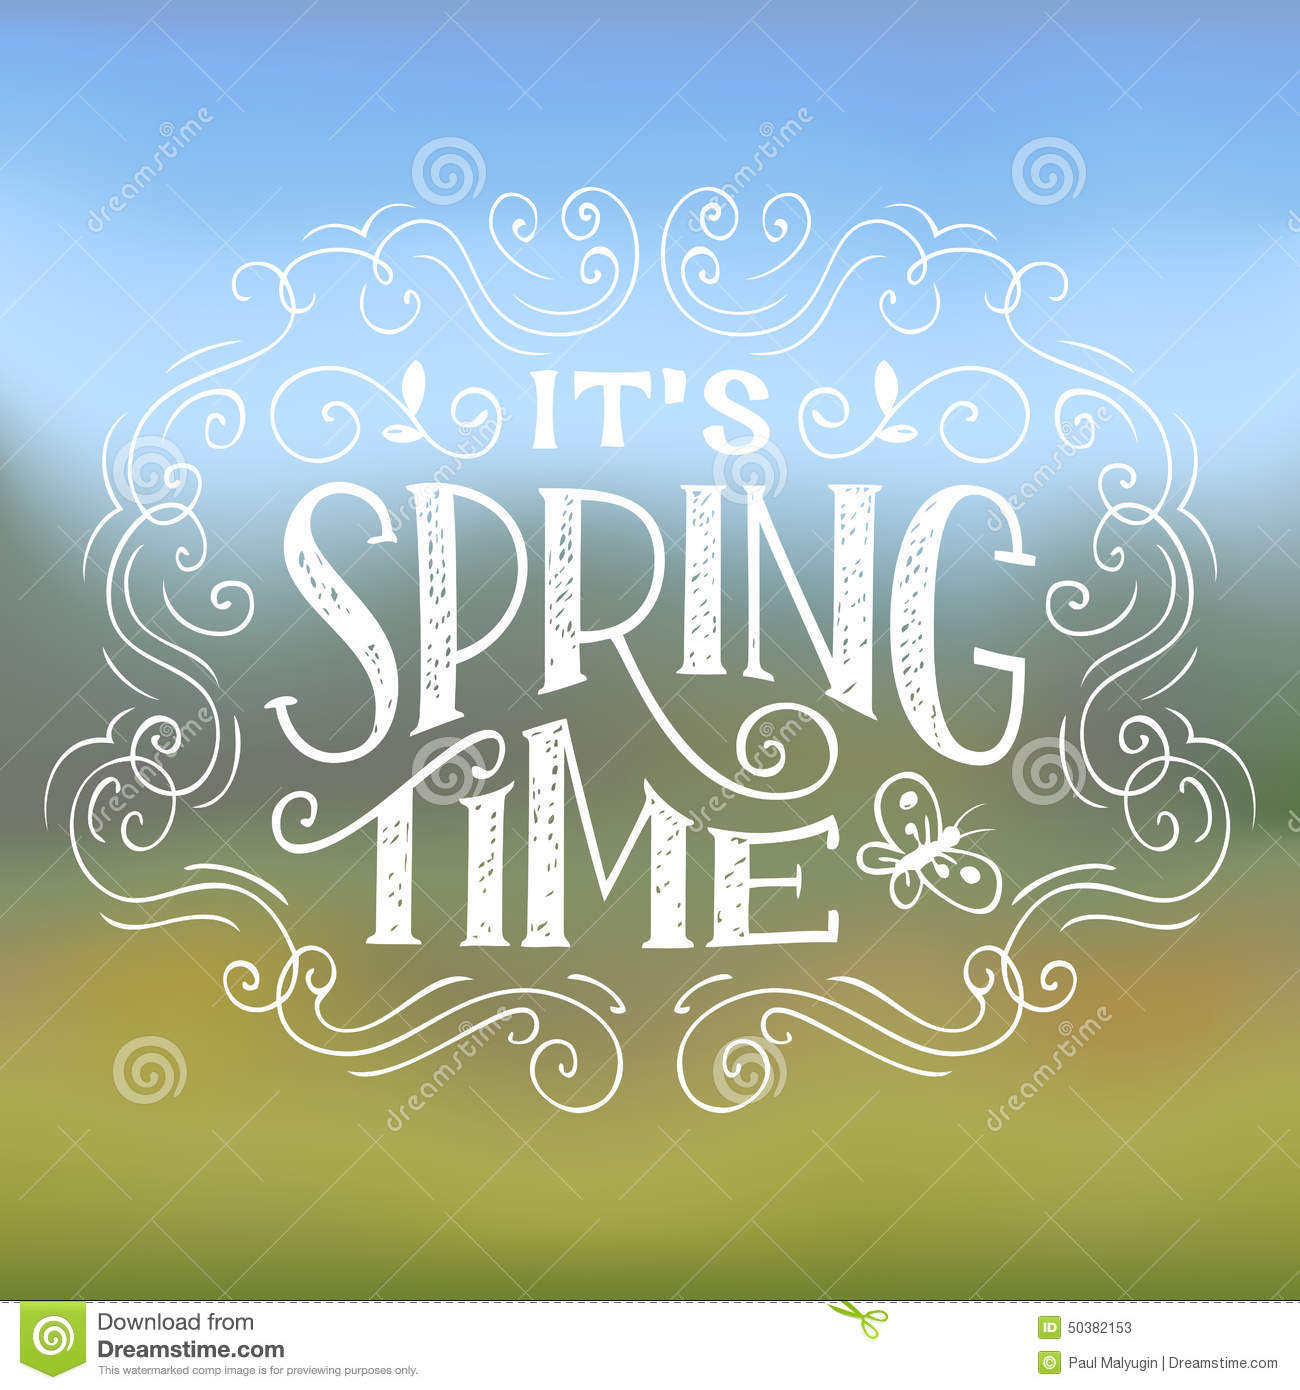 It's Spring Time. Hand-lettering typographic design on nature background